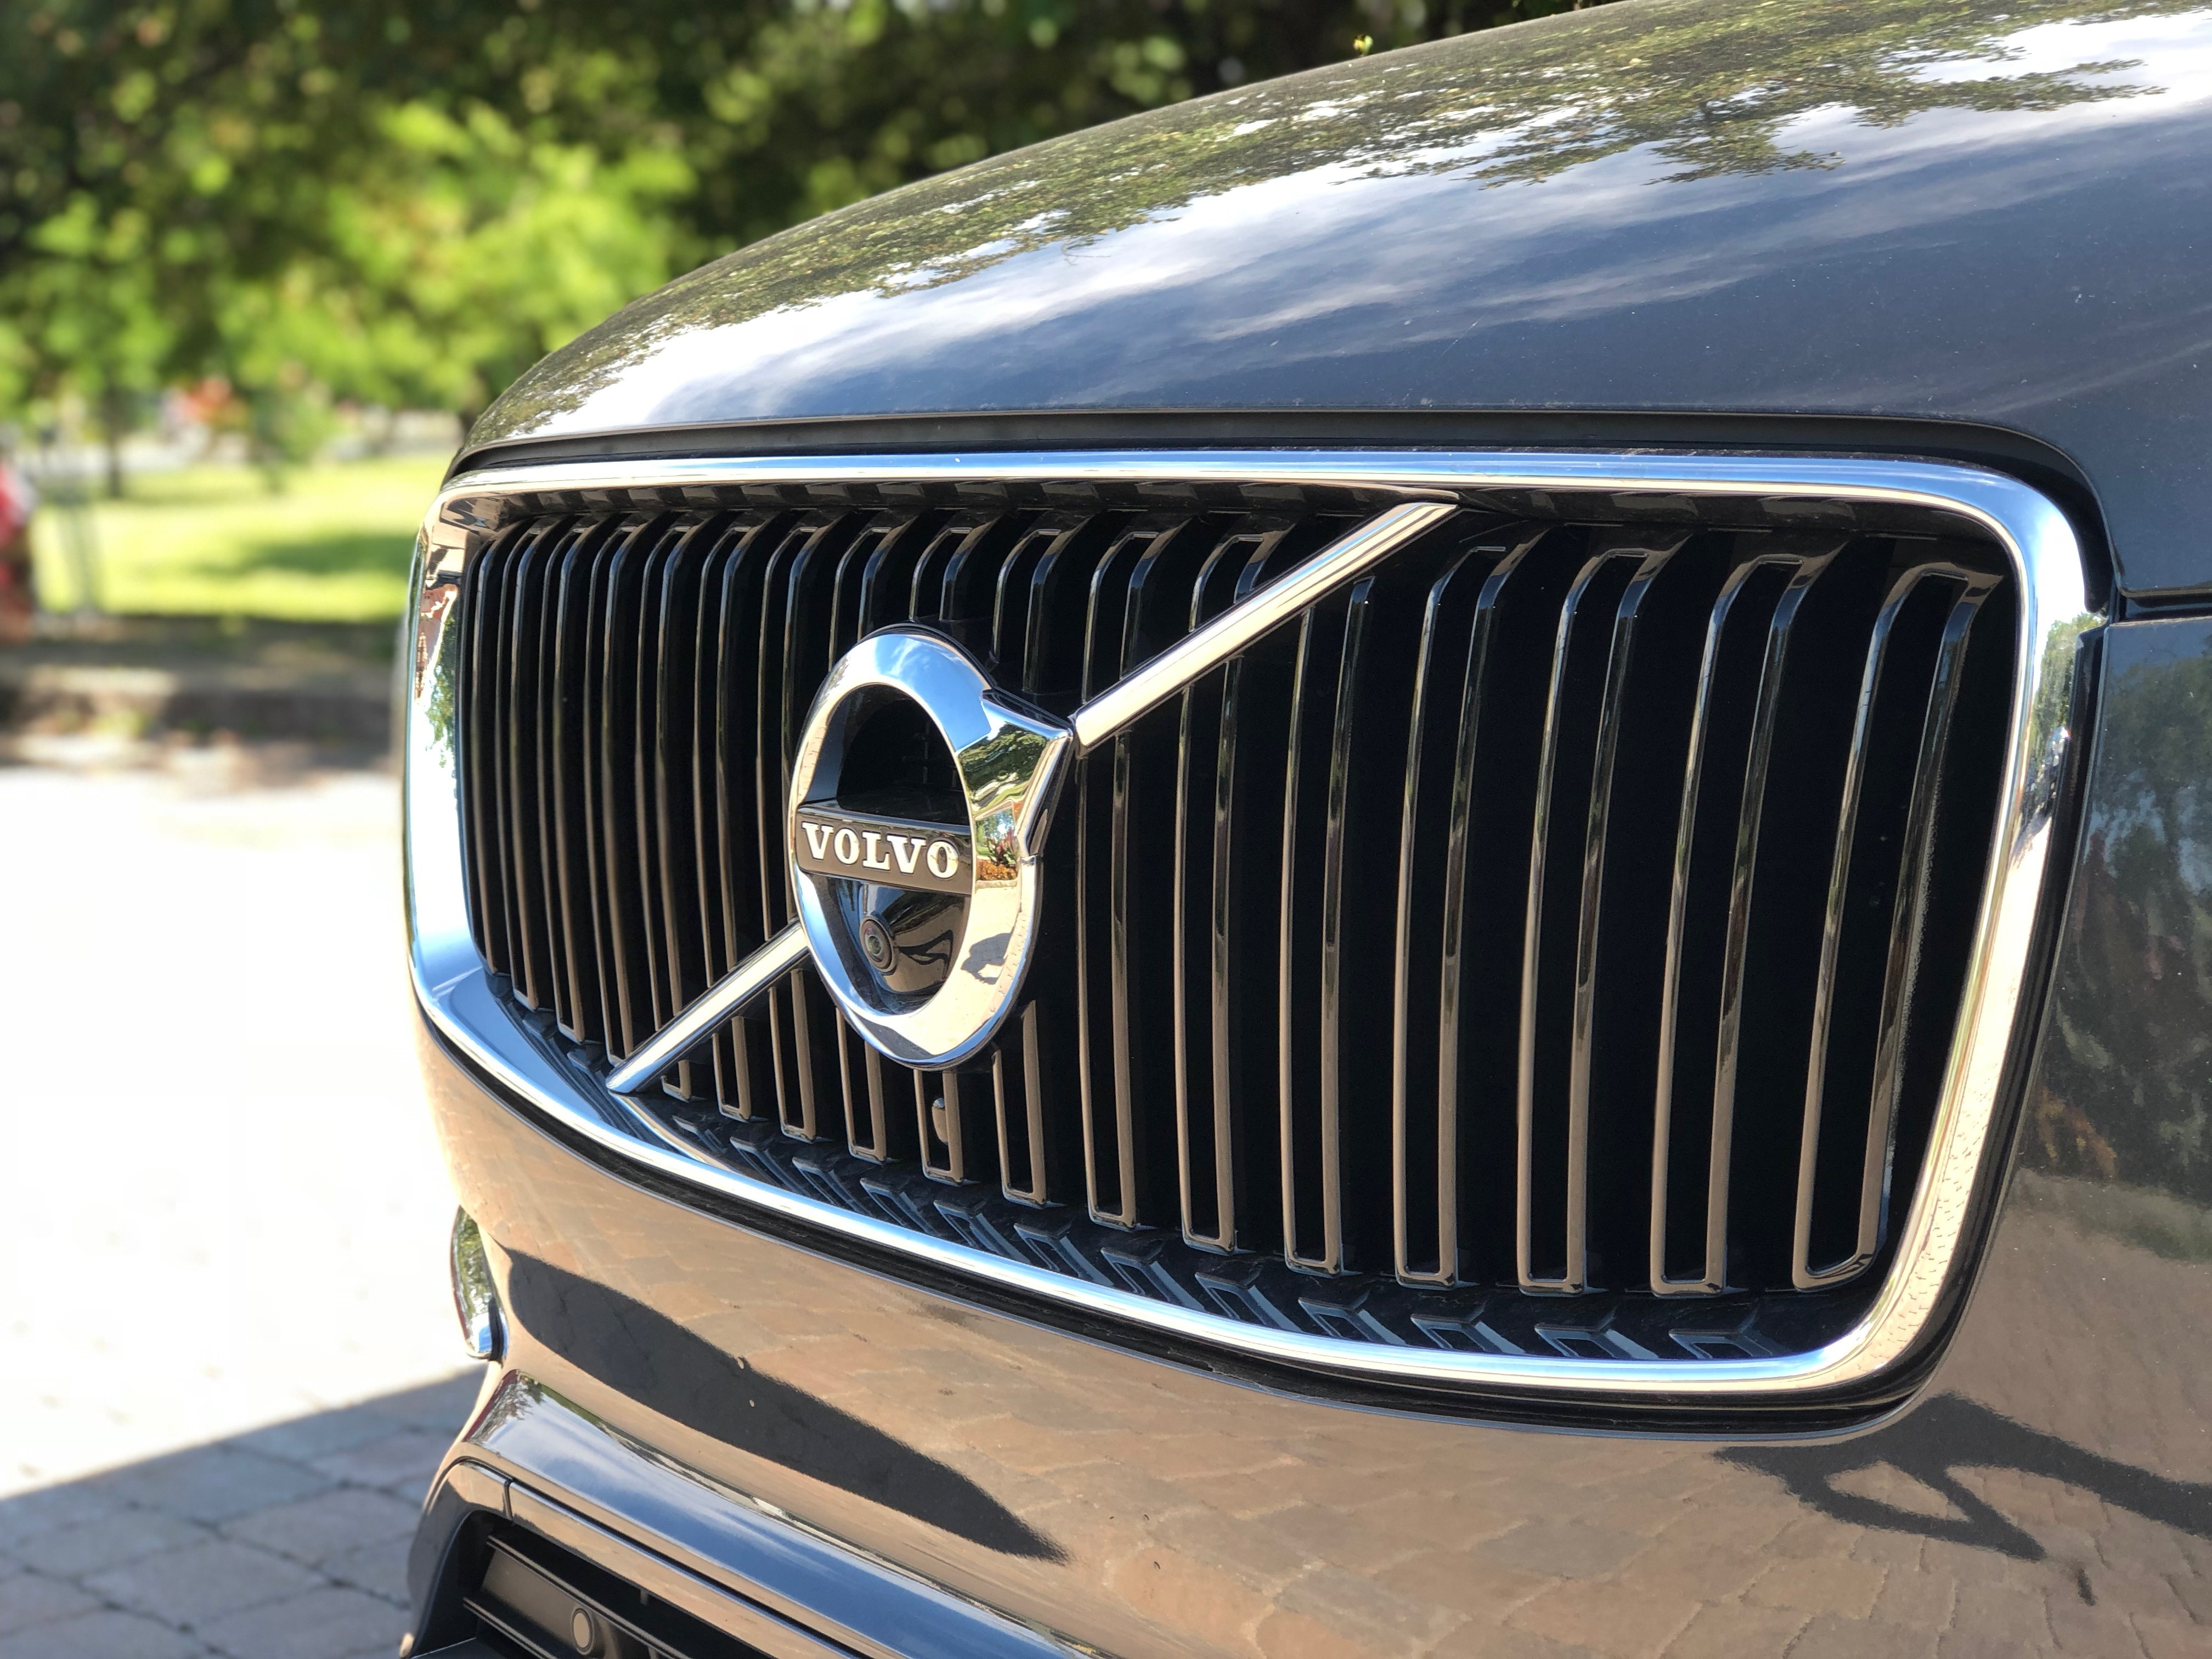 Front grille volvo XC90 T6 road rug cars roadrugcars brothers car voiture auto automobile vintage car super car hyper car